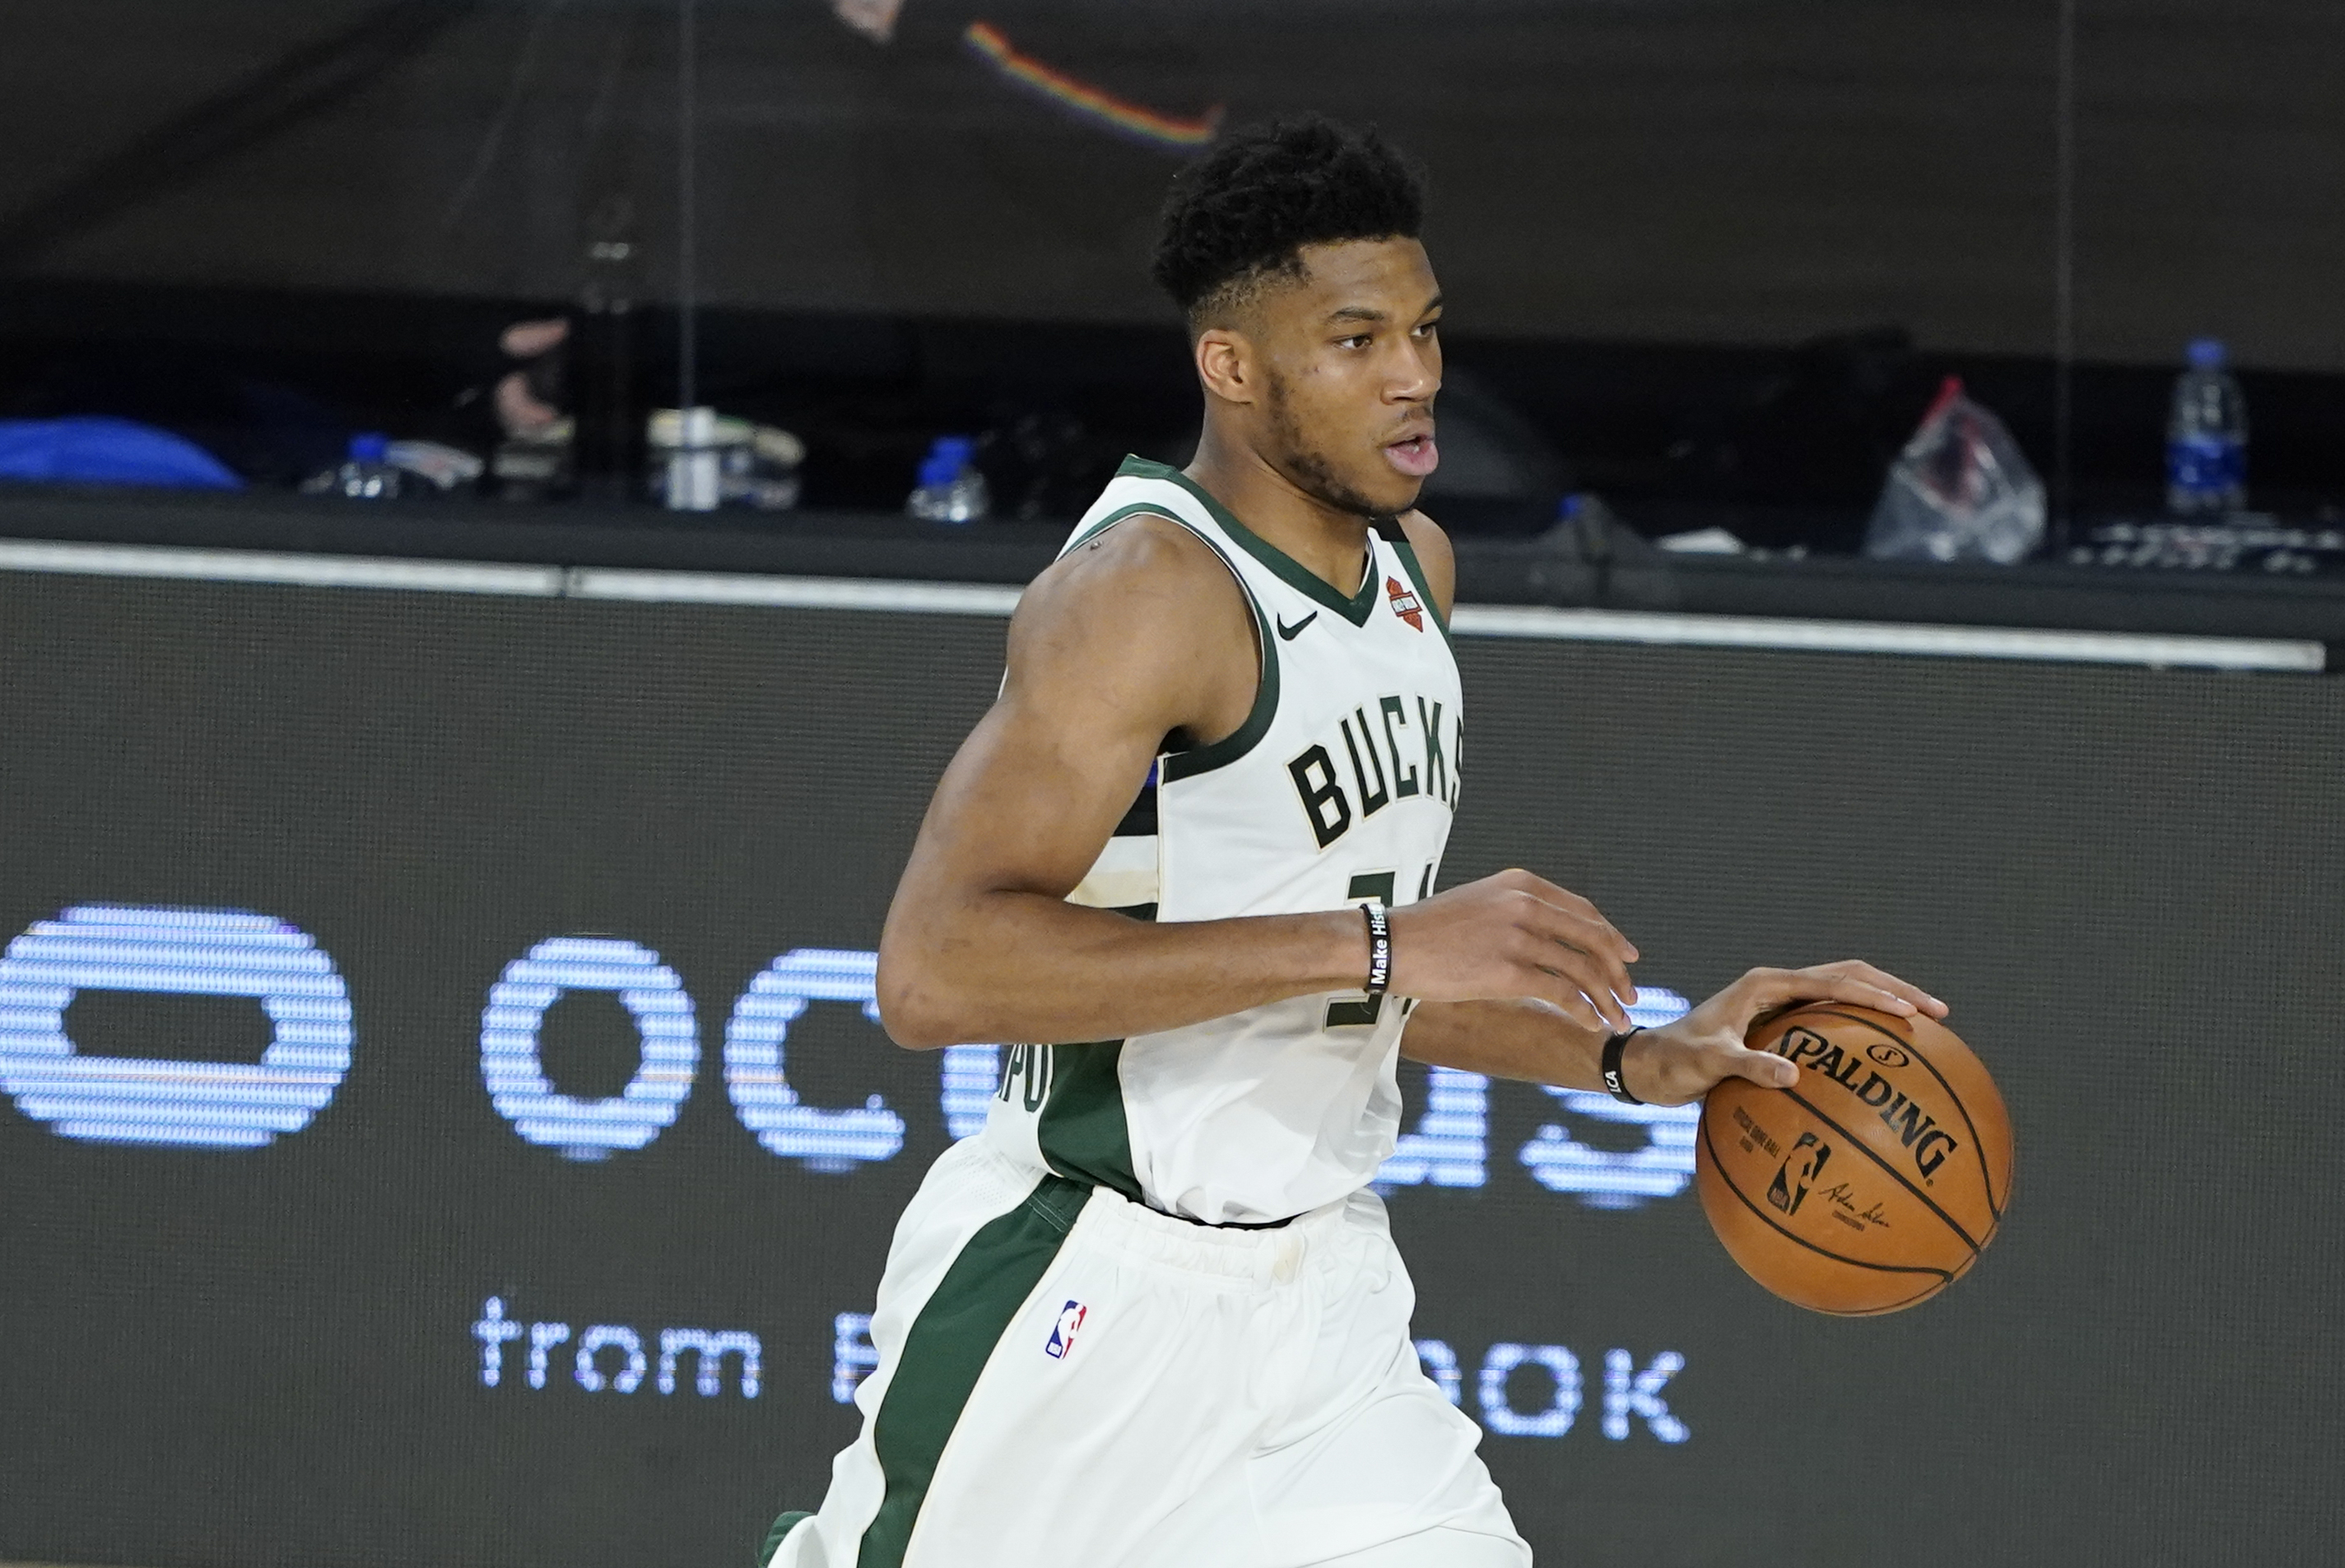 How Much Money Can Giannis Antetokounmpo Earn by Signing a Supermax Contract With the Milwaukee Bucks?